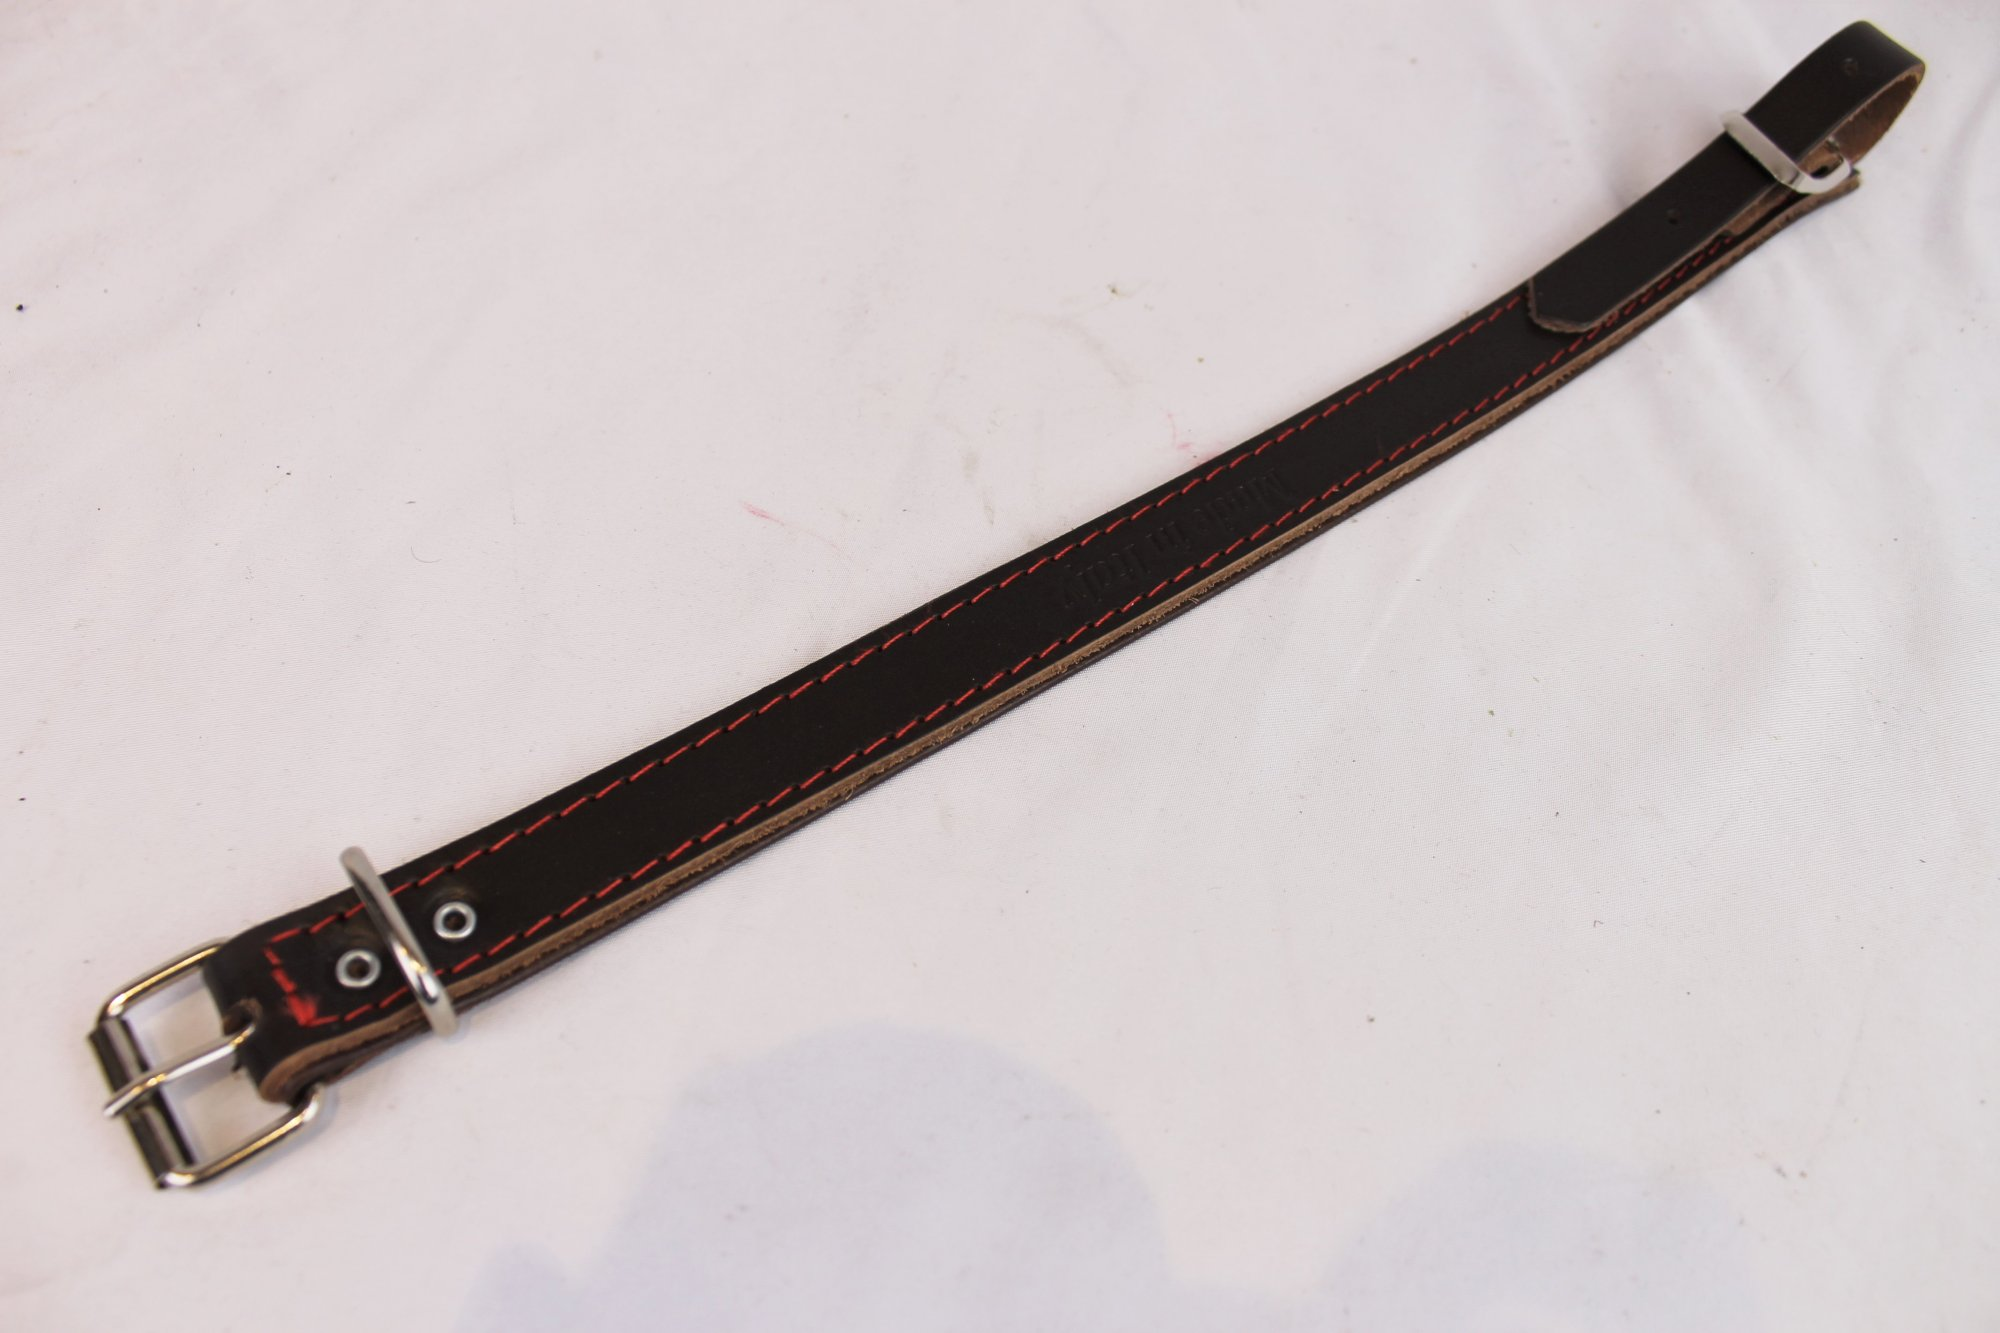 NEW Brown Fuselli Leather Shoulder Strap Extender Width (2.5cm / 1in) Length (39.5cm / 15.5in) - Red Stitching